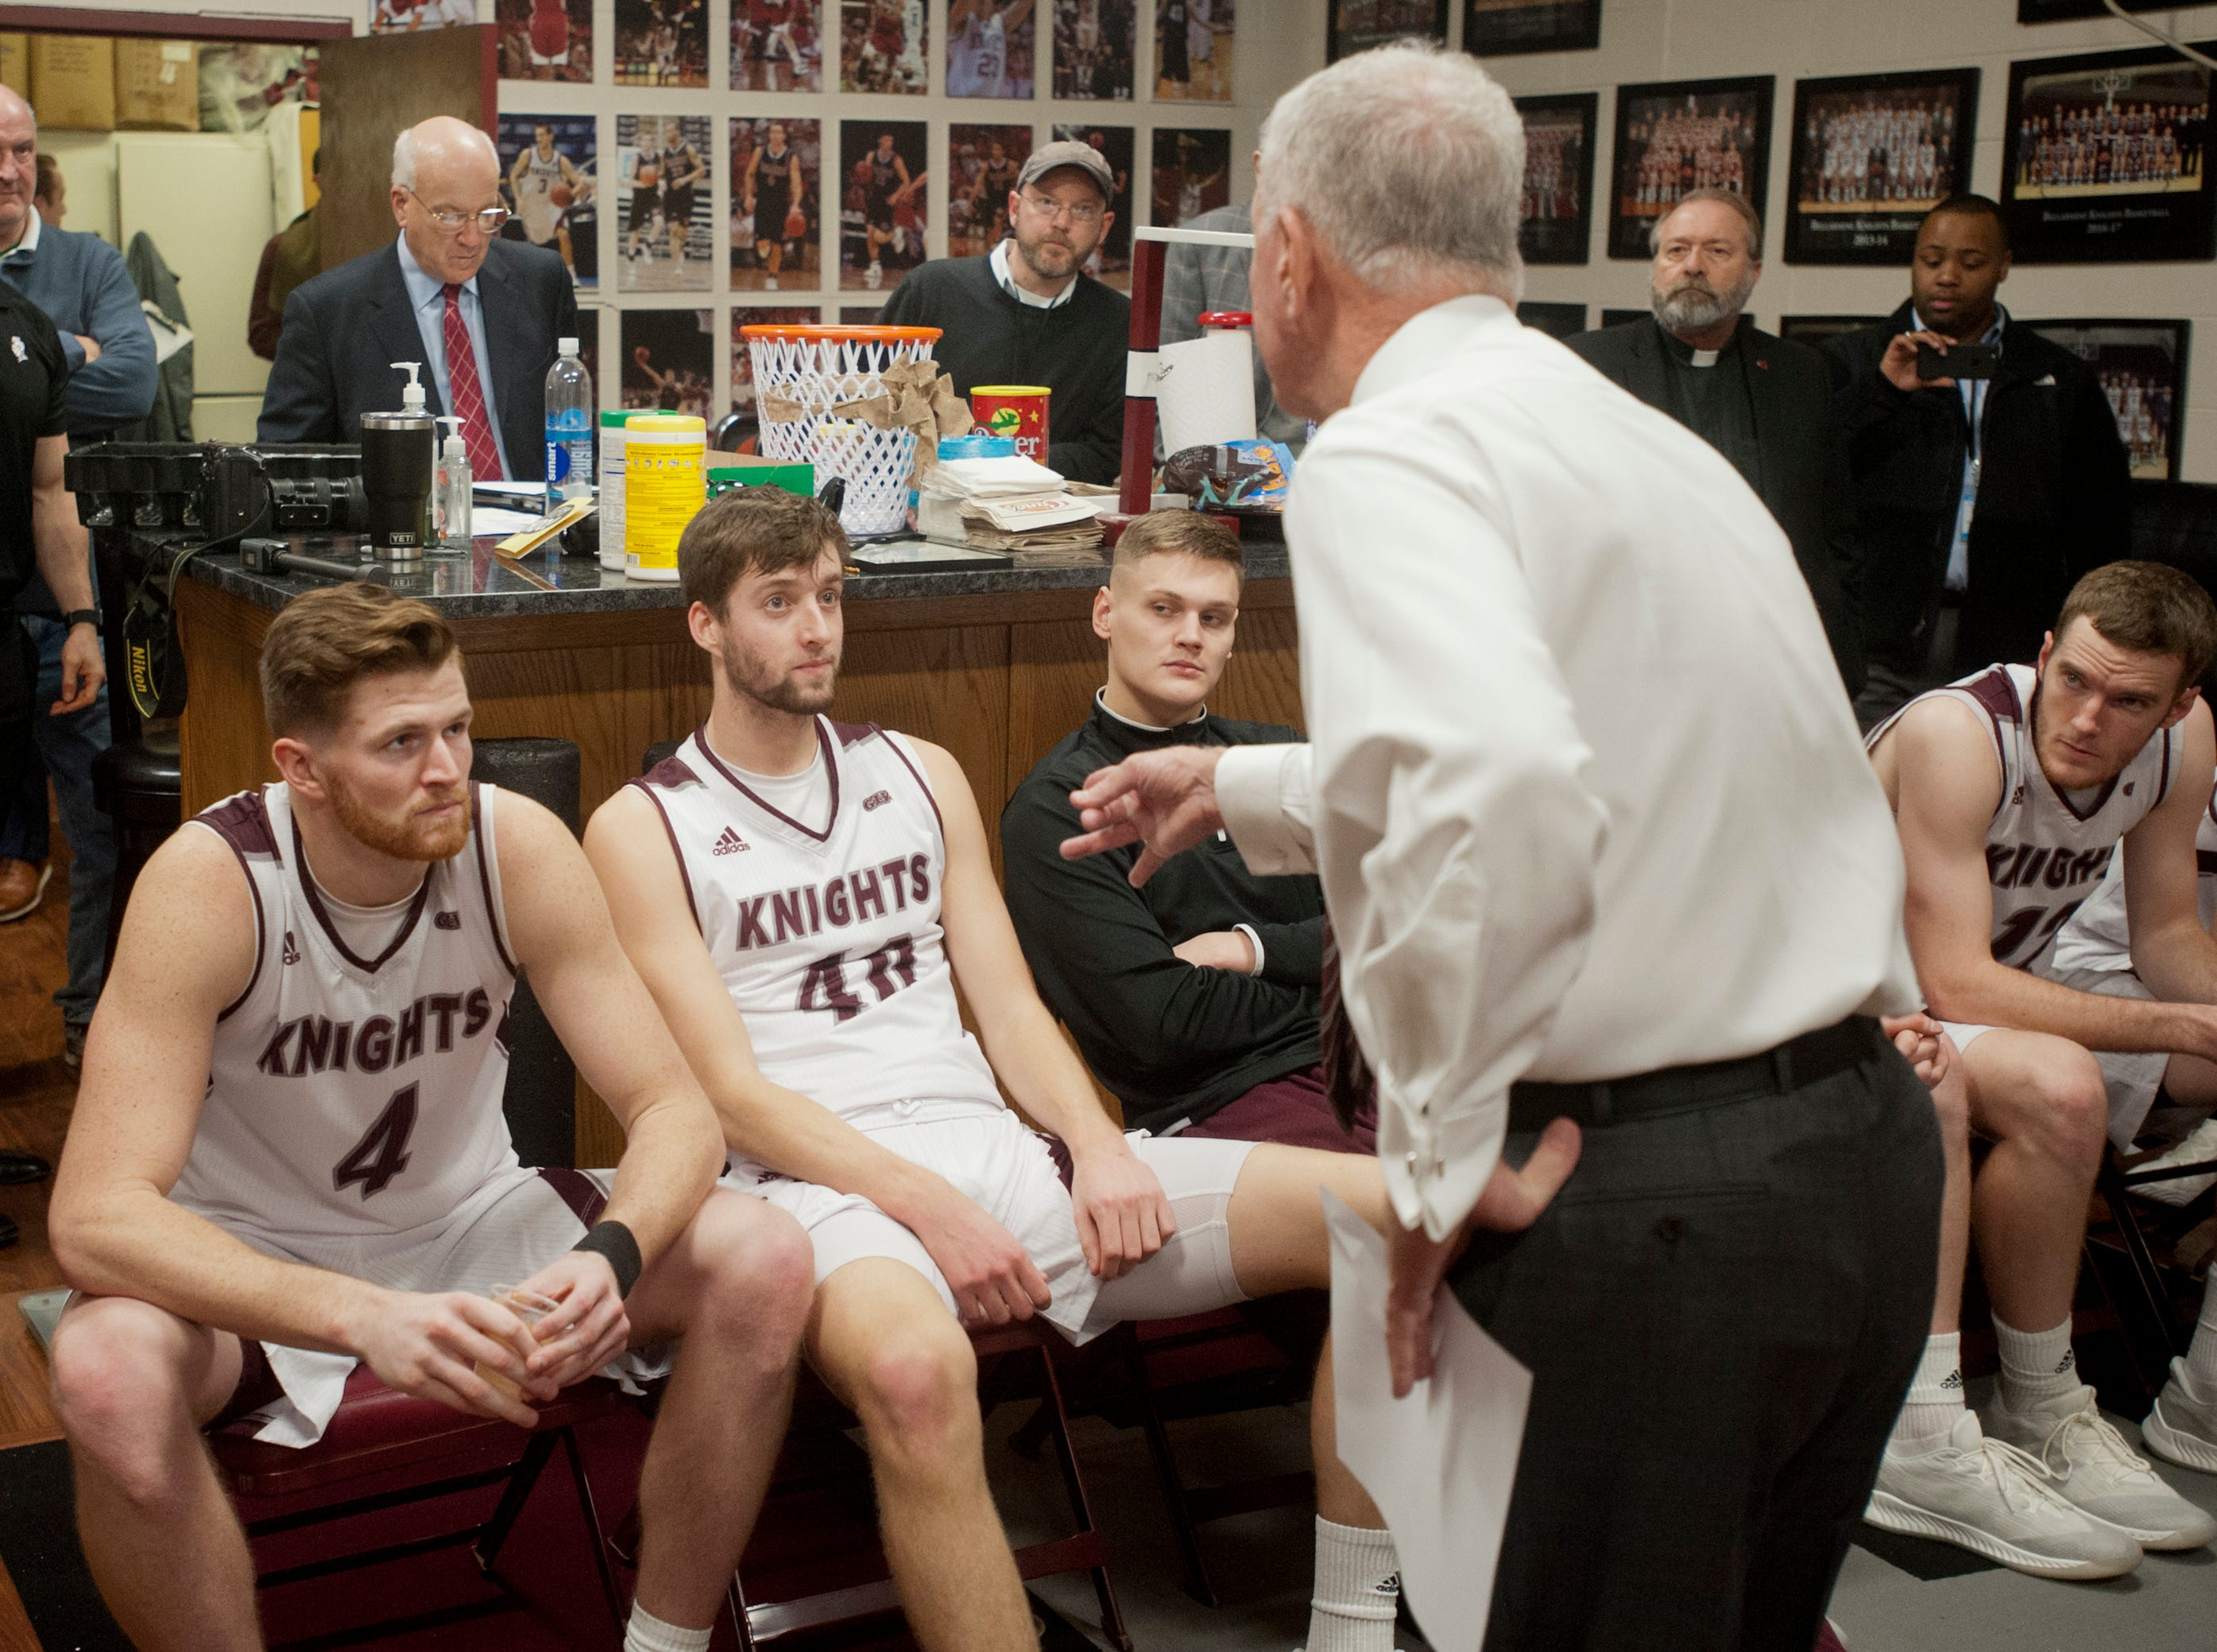 After singling out Bellarmine guard Dylan Penn during the game, he told the player that there was nothing personal in his actions, then pointed at Bellarmine forward Ethan Claycomb (second from left) to ask him if he hadn't experienced a similar personal tutelage experience during his Bellarmine basketball career.18 December 2018